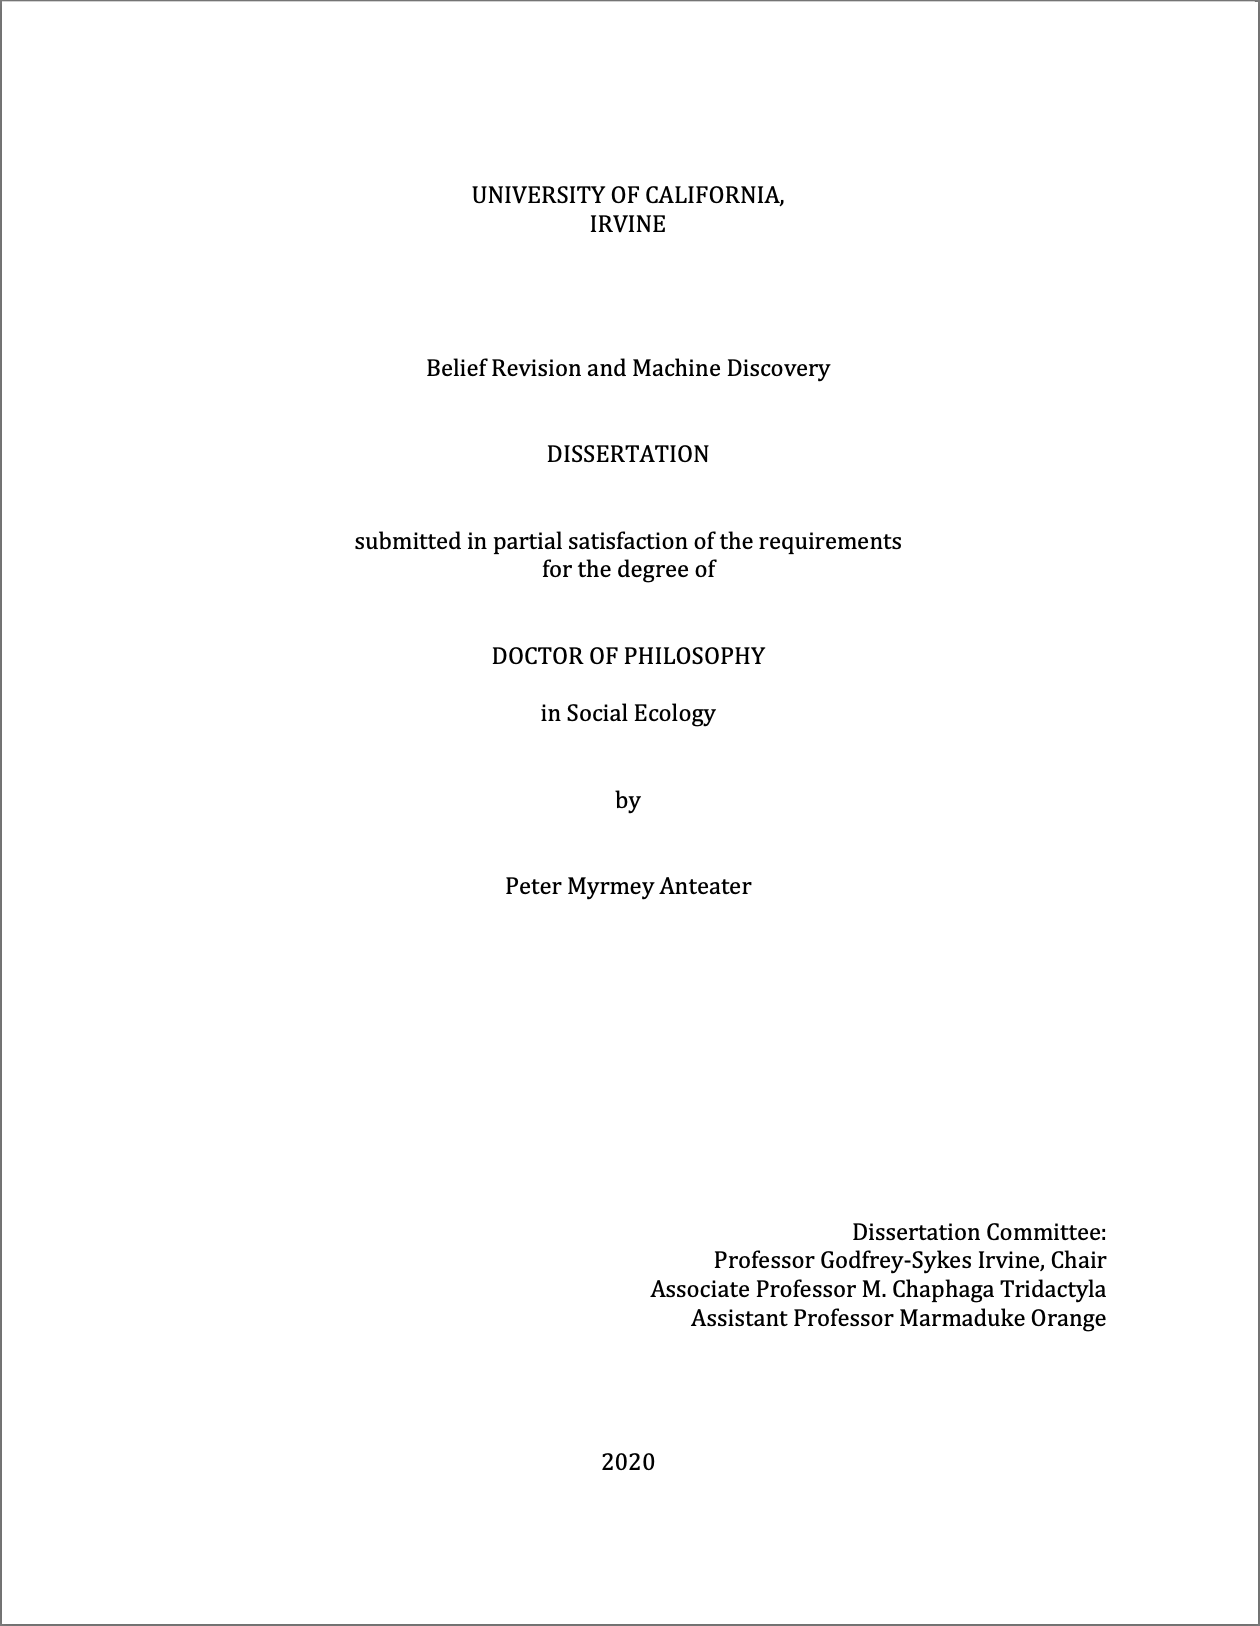 Sample title page from Dissertation Template. Word document screenshot